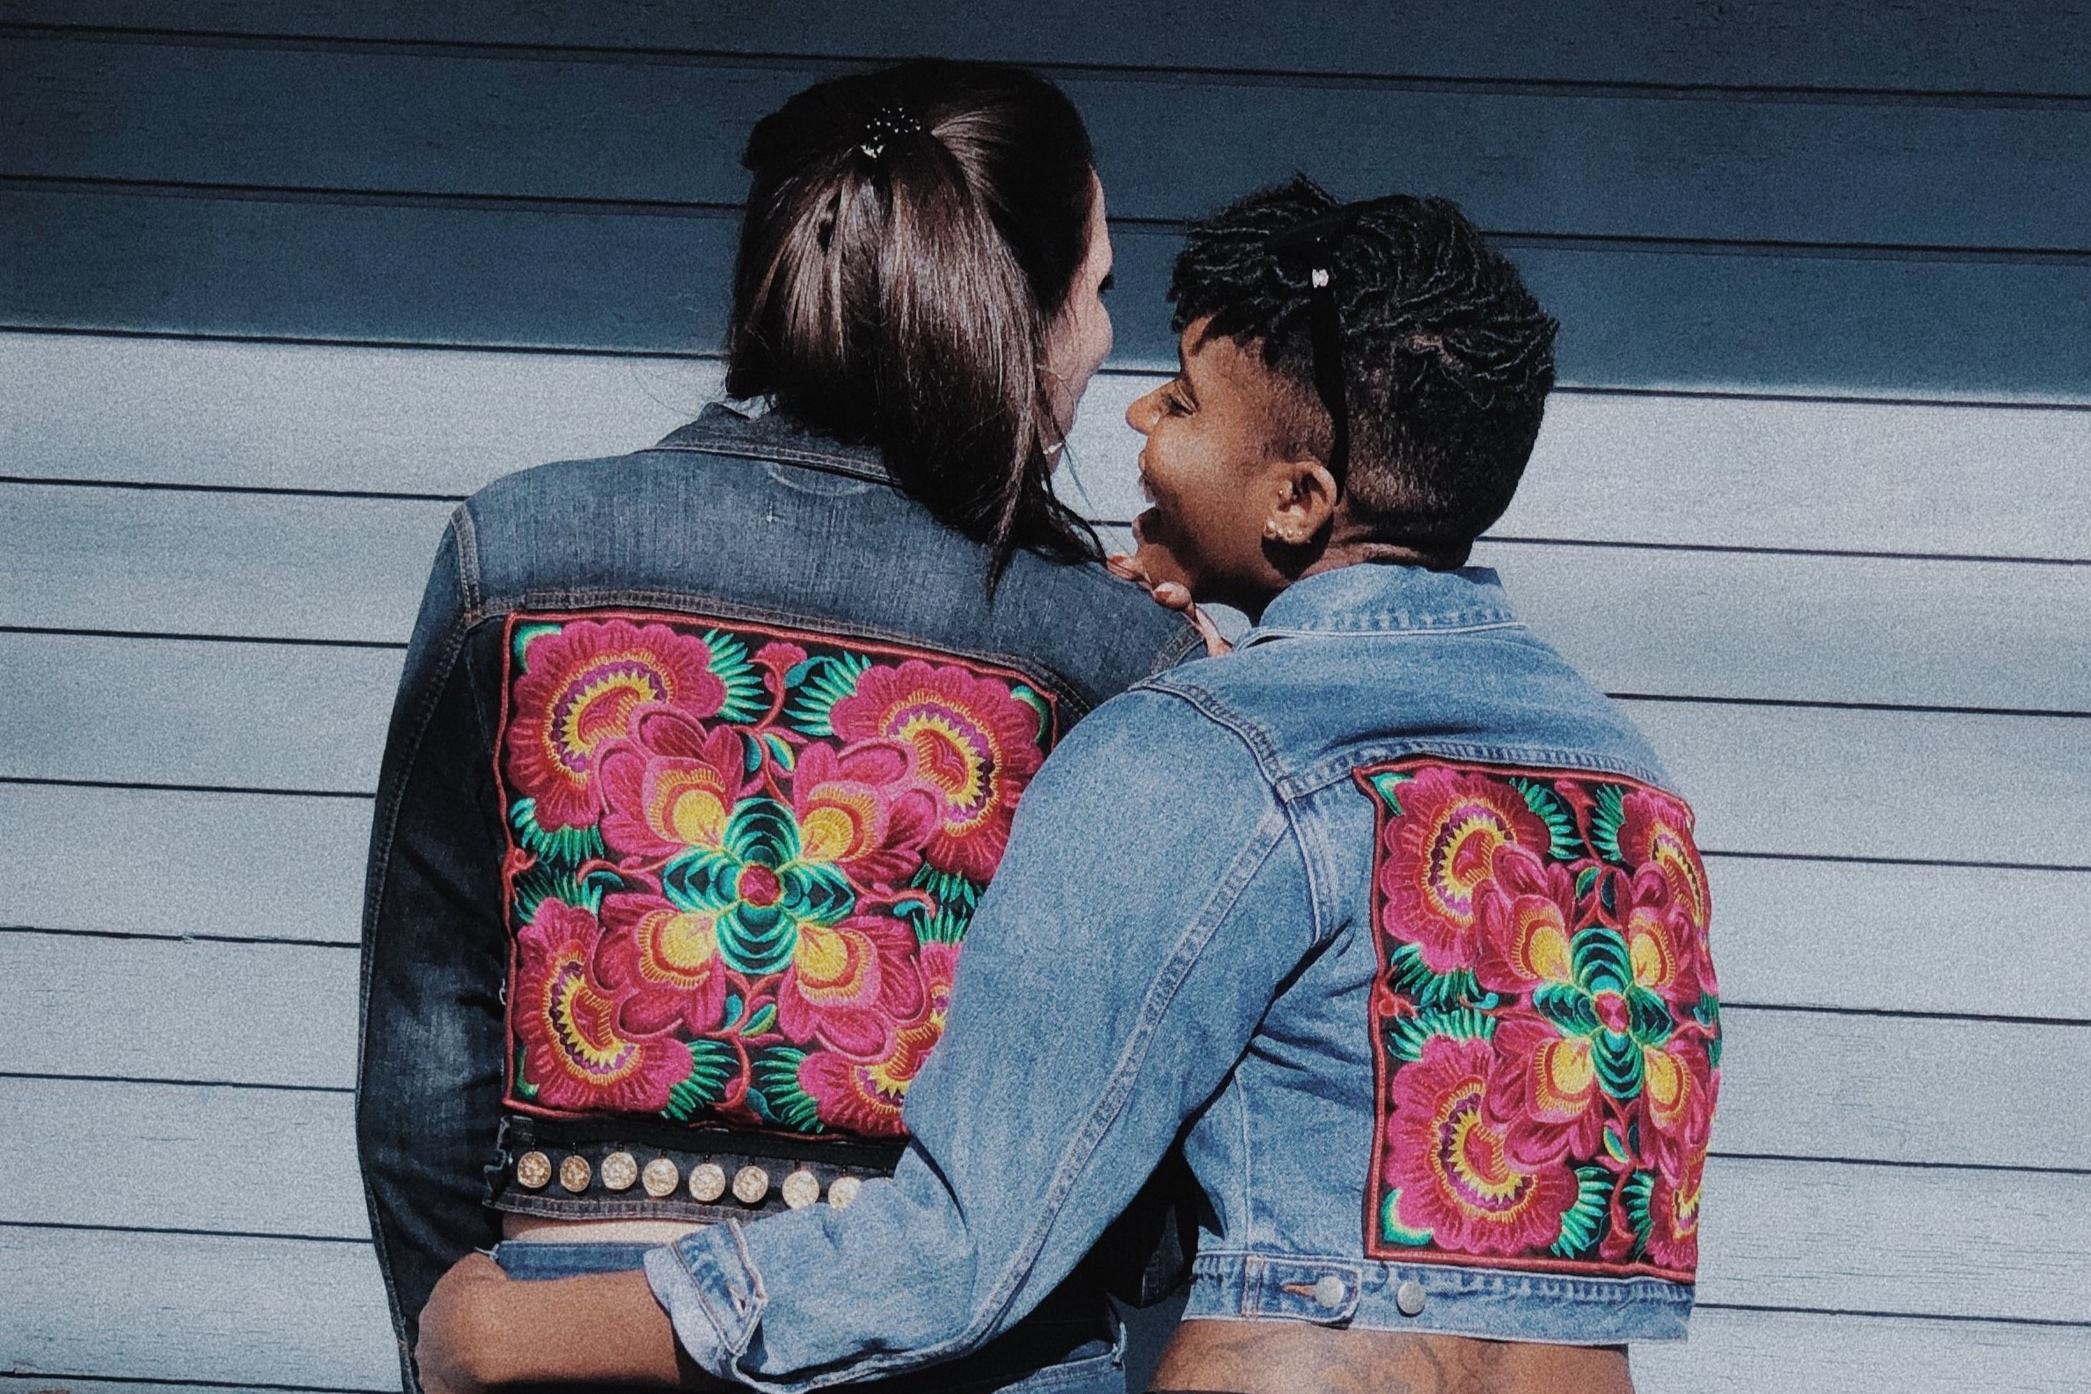 Become an Ambassador - WE WANT YOU to wear our denim. Style it. Show it off. Tag us. Tell your friends. Travel wide. Earn rewards. Get more denim. Empower artisans. This is (part of) your calling. We want you.